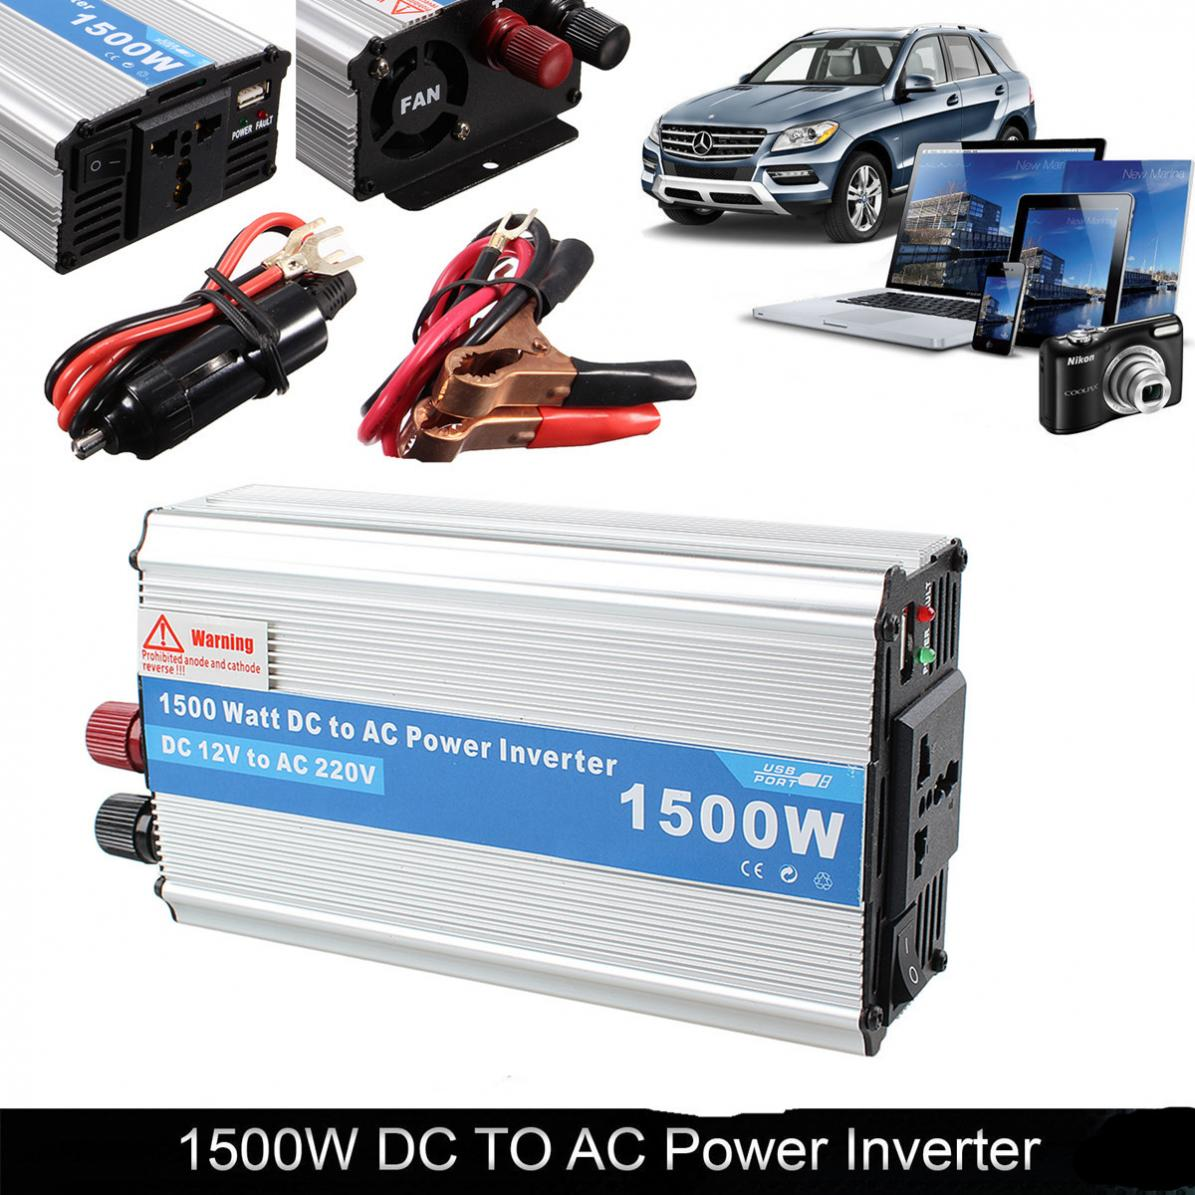 1500W <font><b>Car</b></font> Power Inverter DC <font><b>12V</b></font> <font><b>to</b></font> AC <font><b>220V</b></font> Power Charger Converter <font><b>Car</b></font> Inverter <font><b>Adapter</b></font> for Electronic Products image